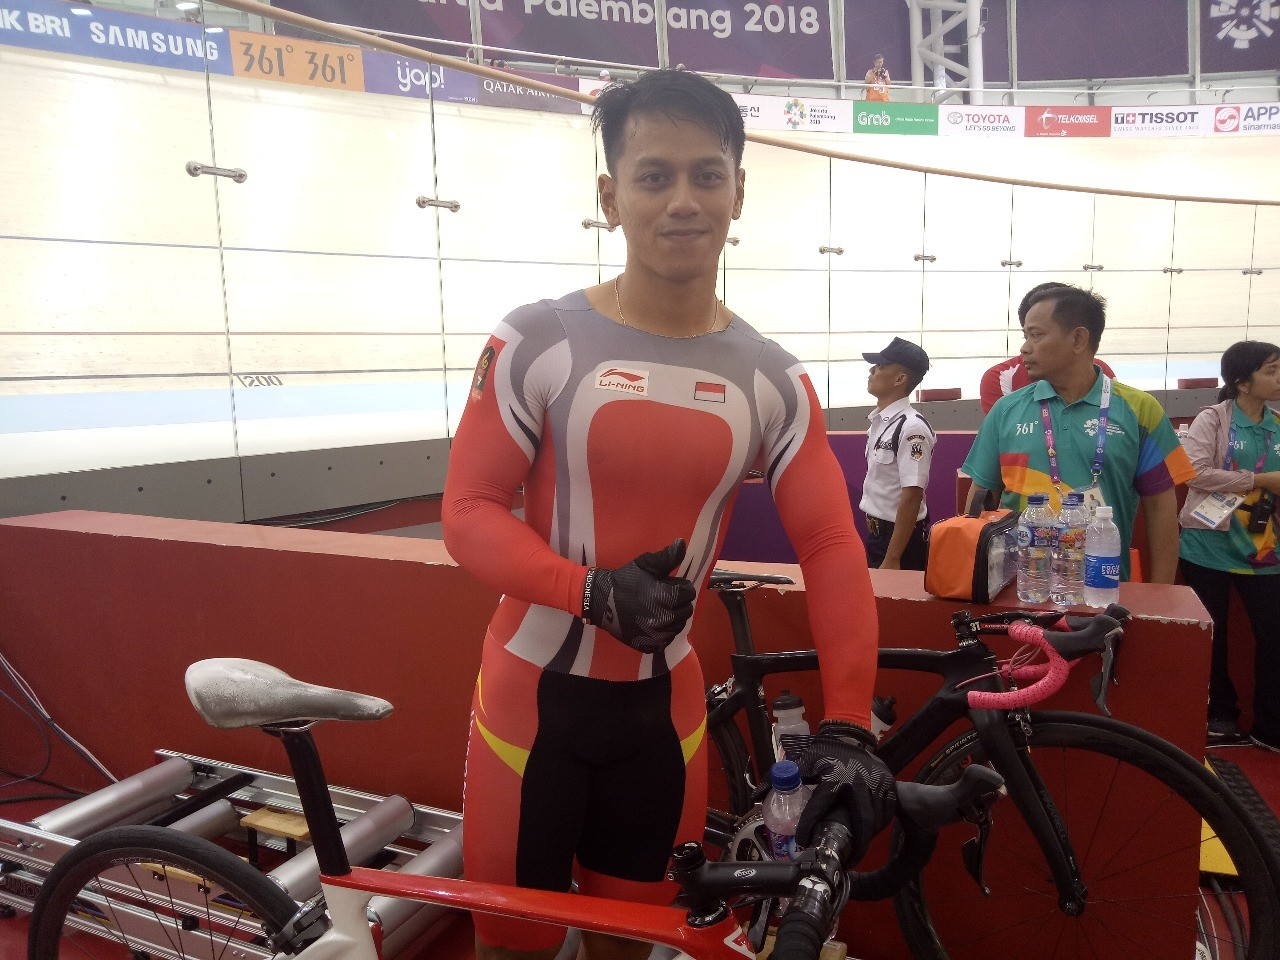 Asian Games: Indonesia loses to China in cycling men's sprint